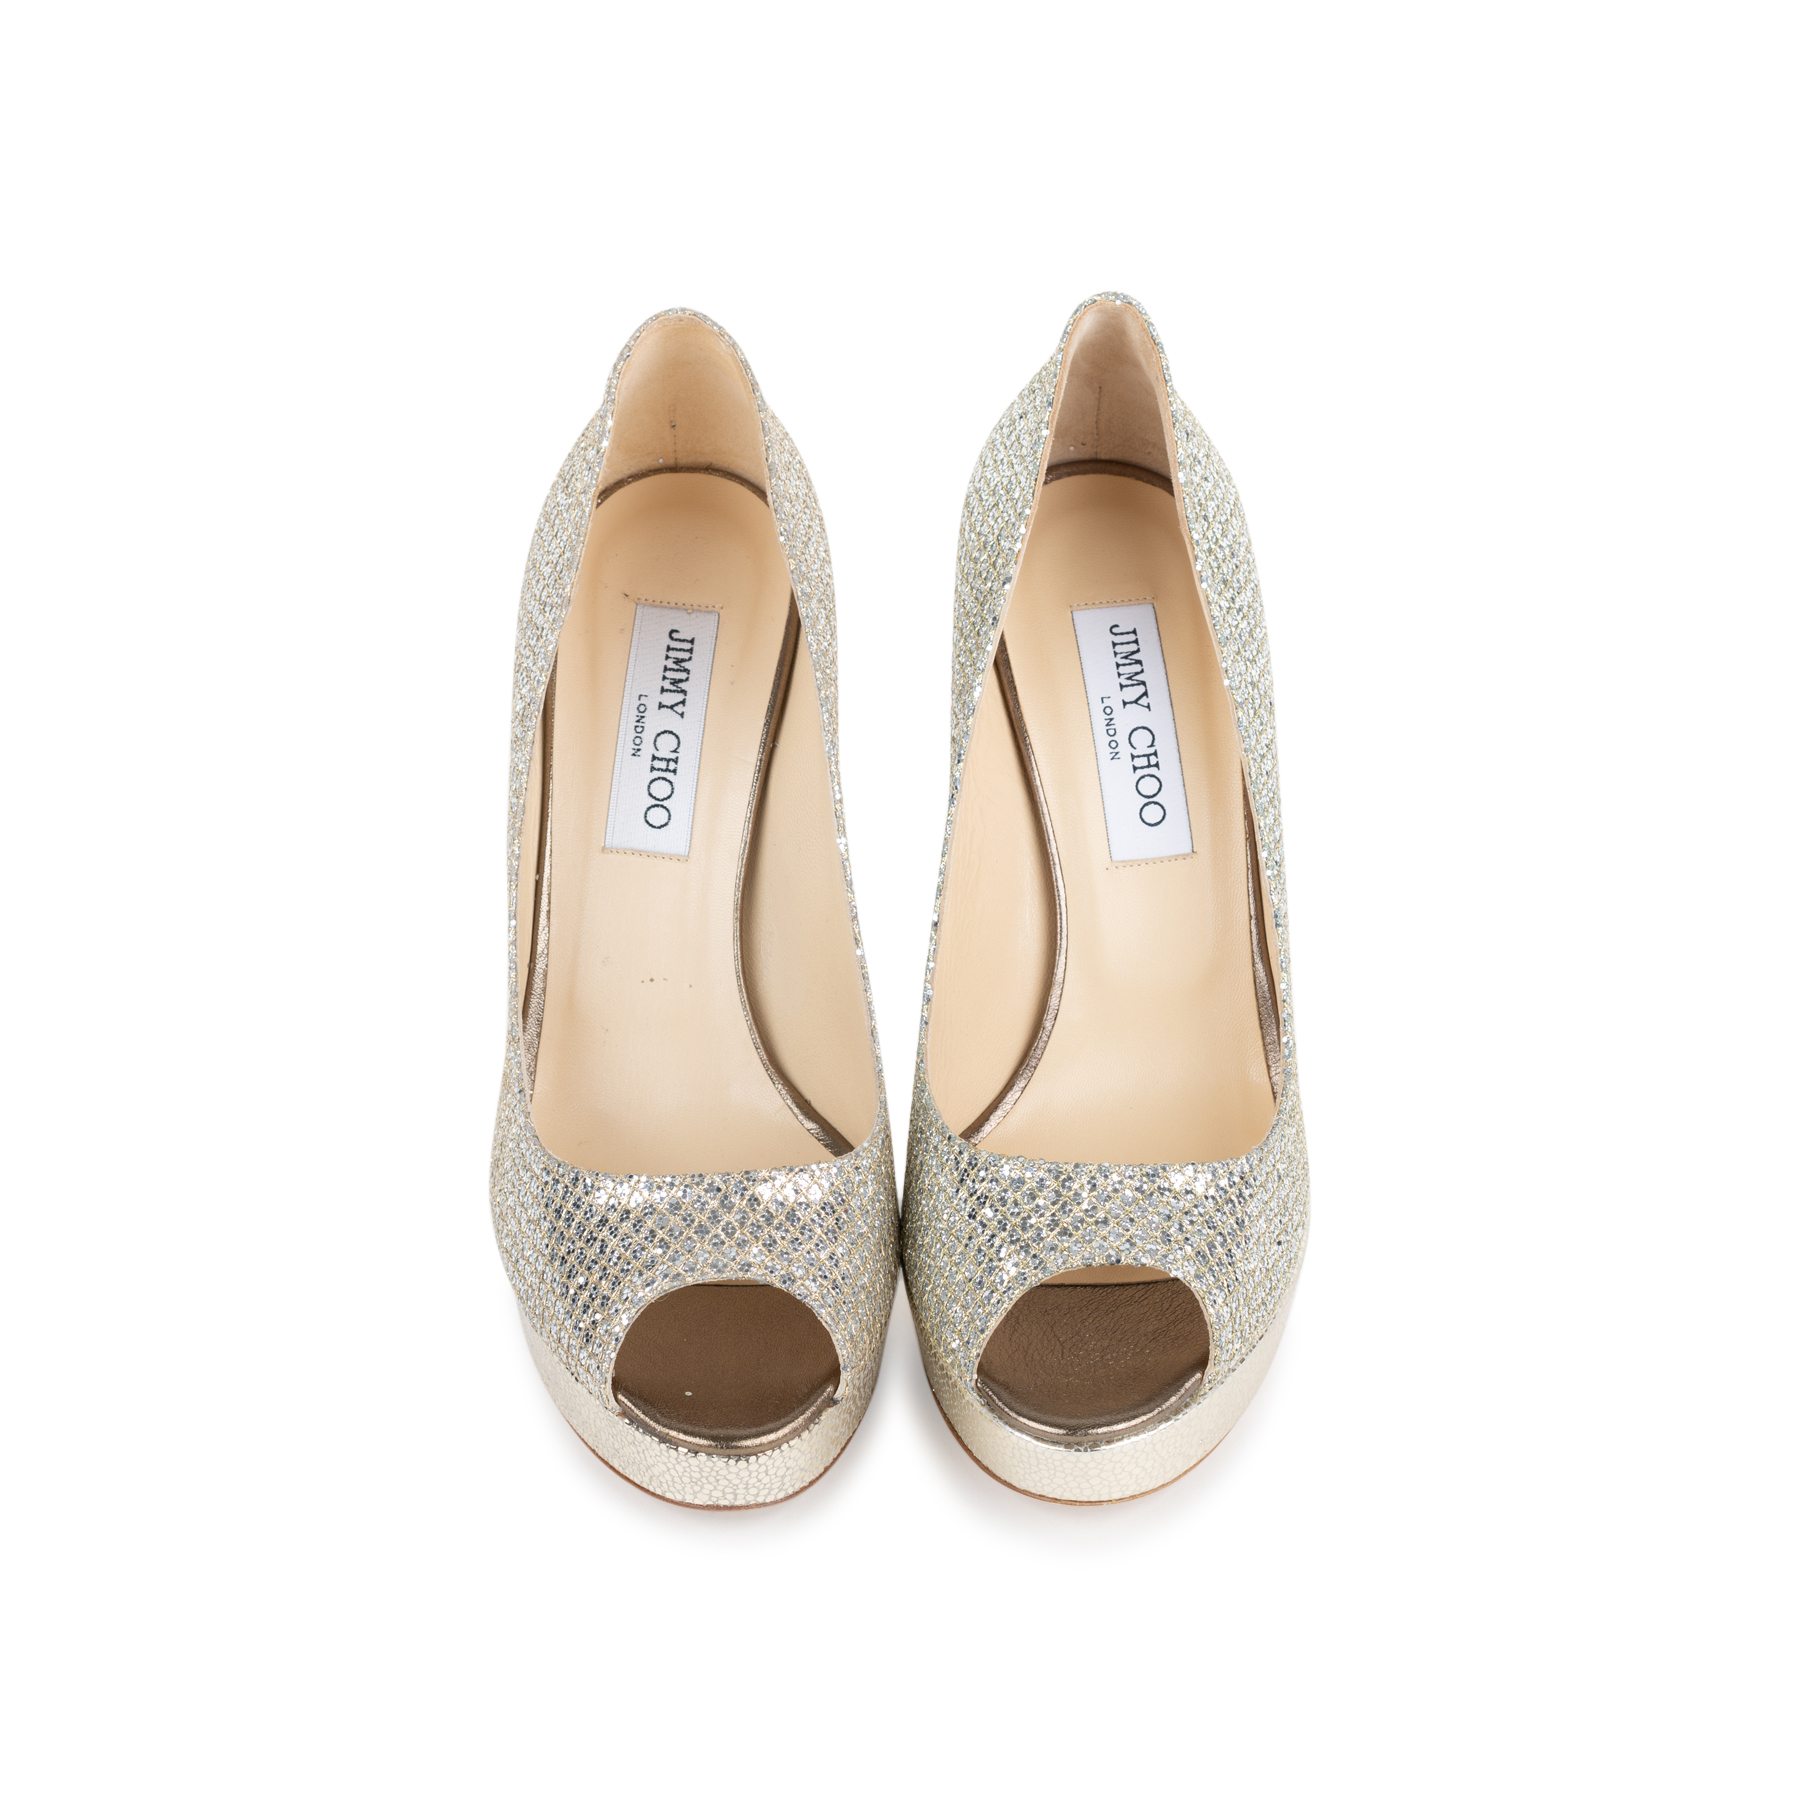 7b9937afddfc Authentic Second Hand Jimmy Choo Crown Peep Toe Pumps (PSS-552-00010 ...